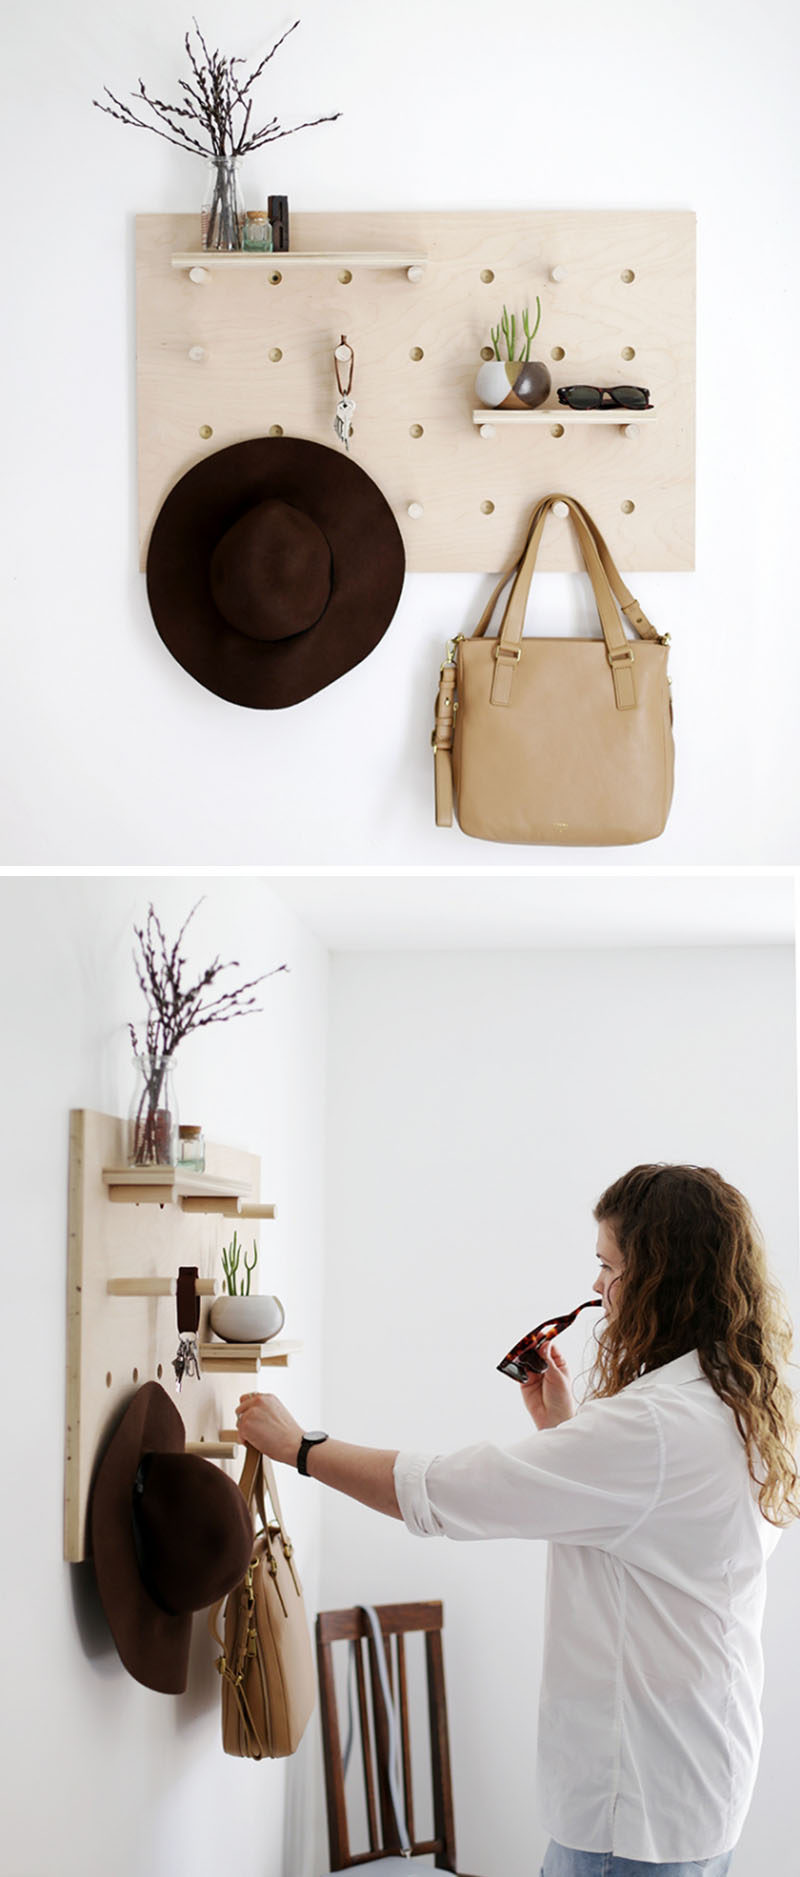 This pegboard is perfectly designed for your accessories…(it's a DIY project)